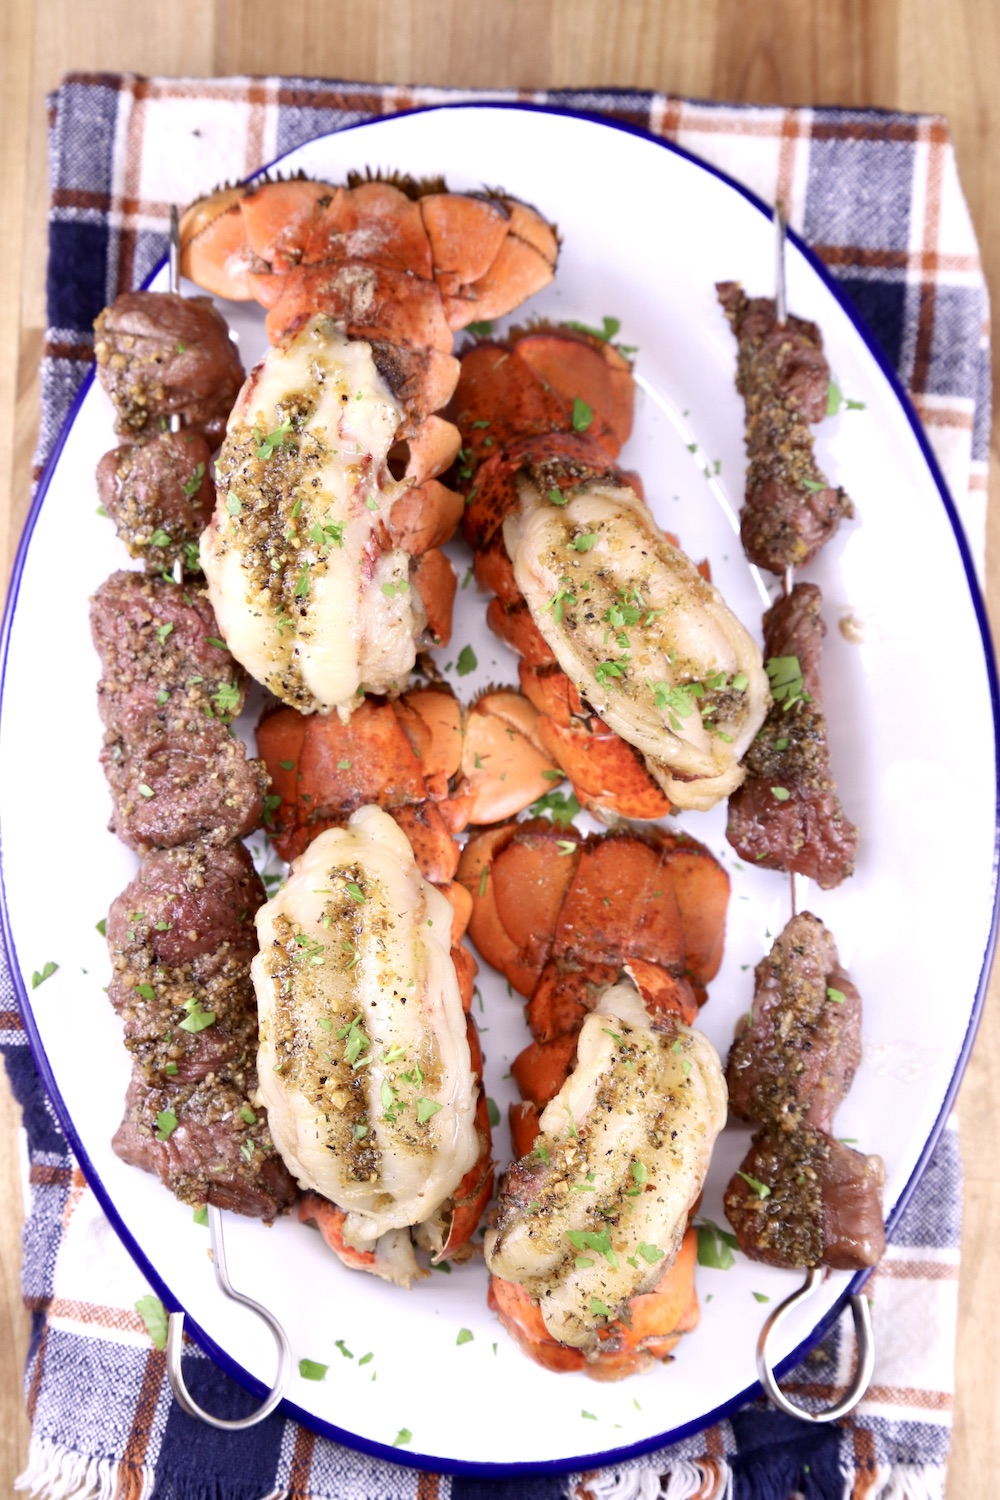 Plaid napkin with oval platter of grilled garlic butter lobster and steak bites